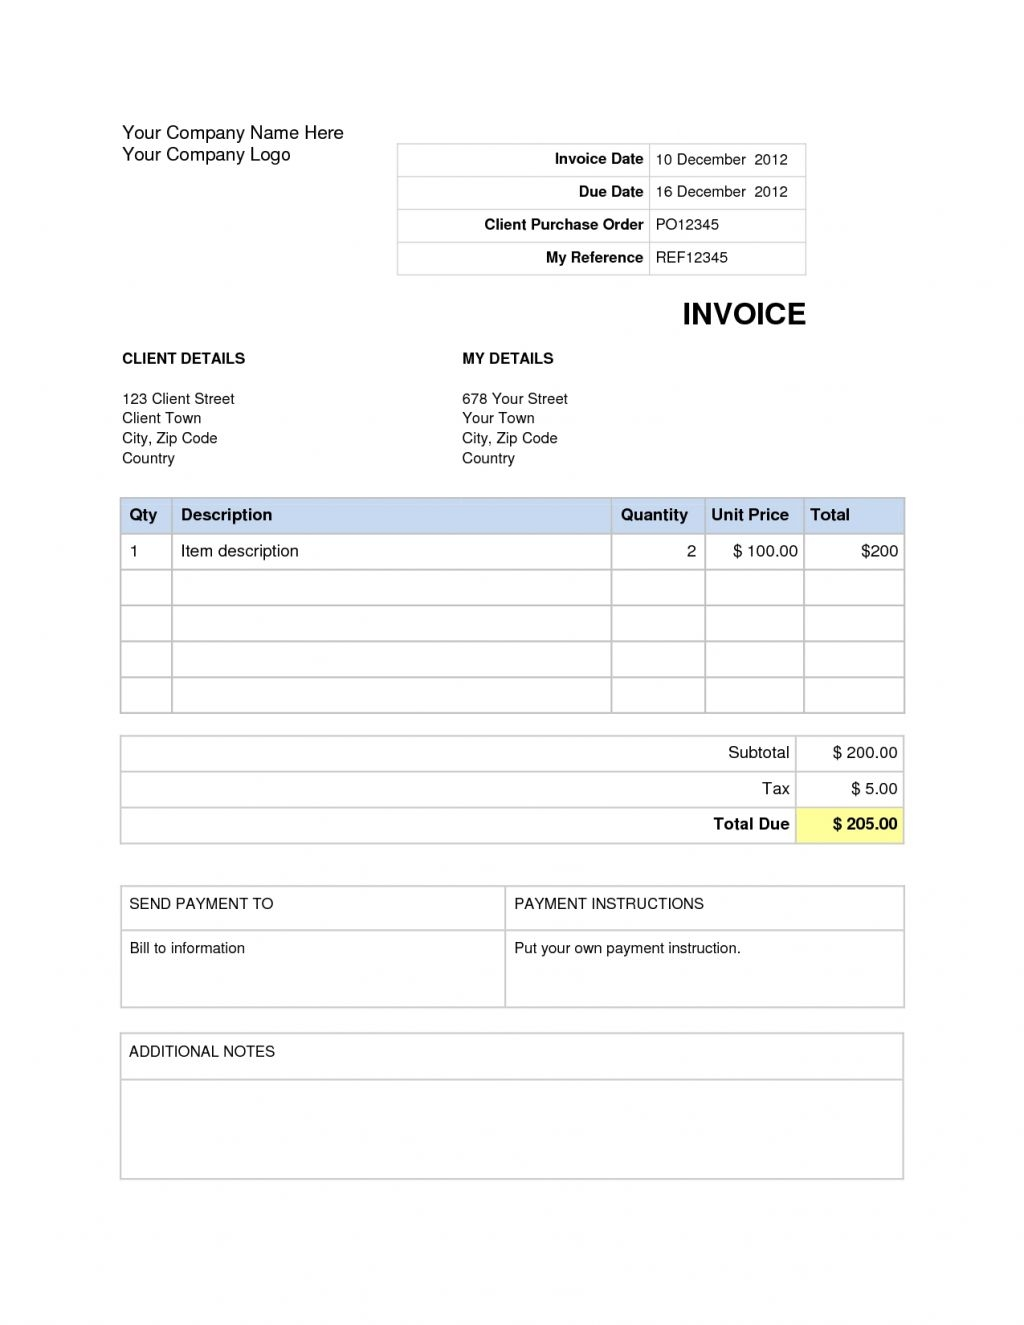 google docs spreadsheet invoice template wiseproof google spreadsheet invoice